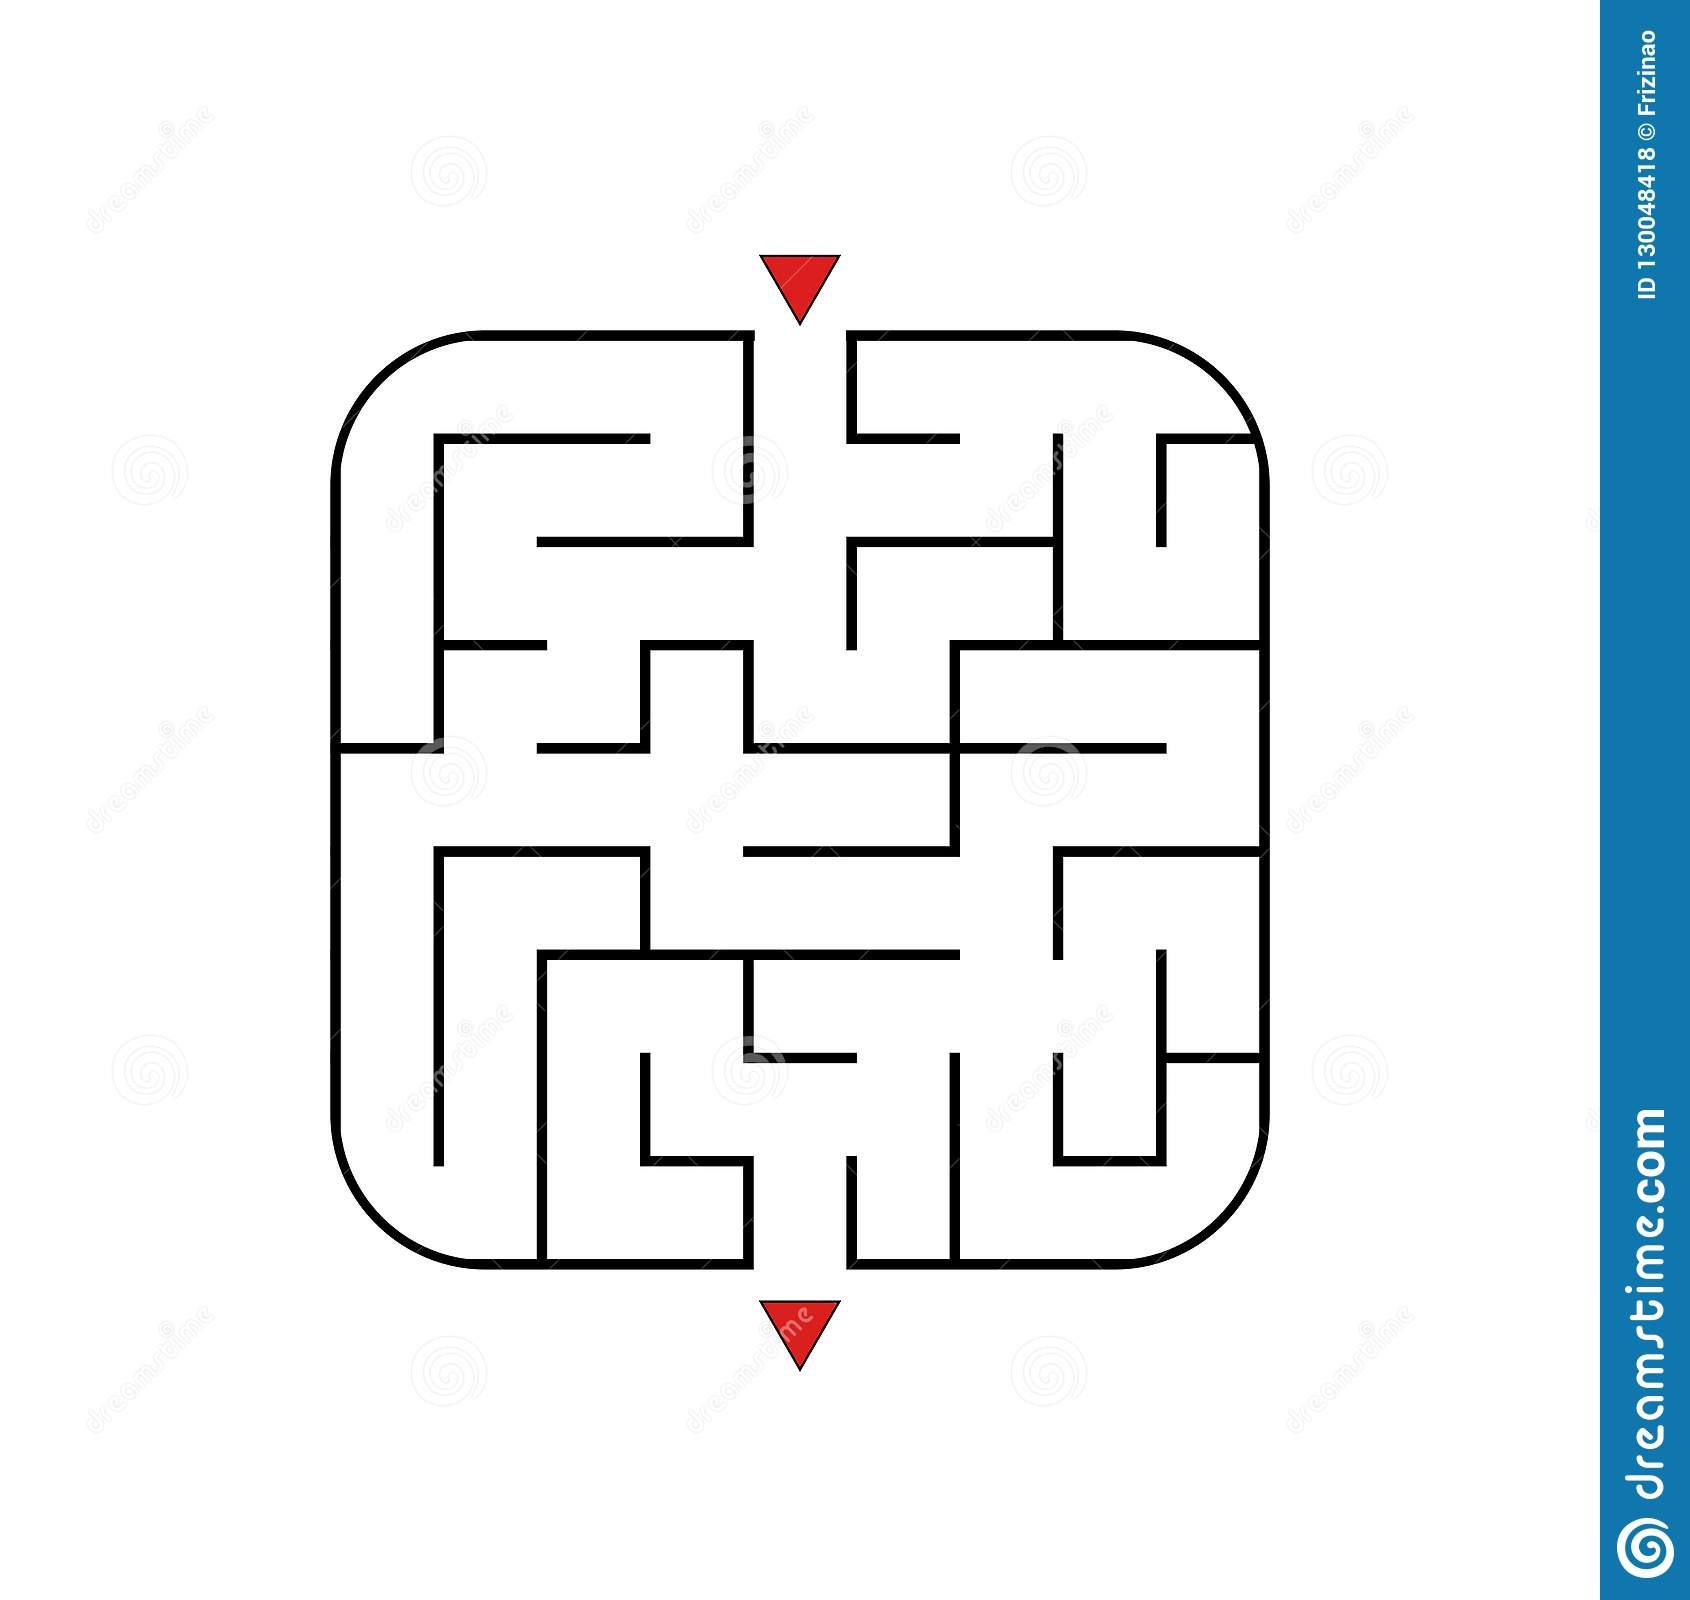 Abstract Square Maze  Easy Level Of Difficulty  Game For